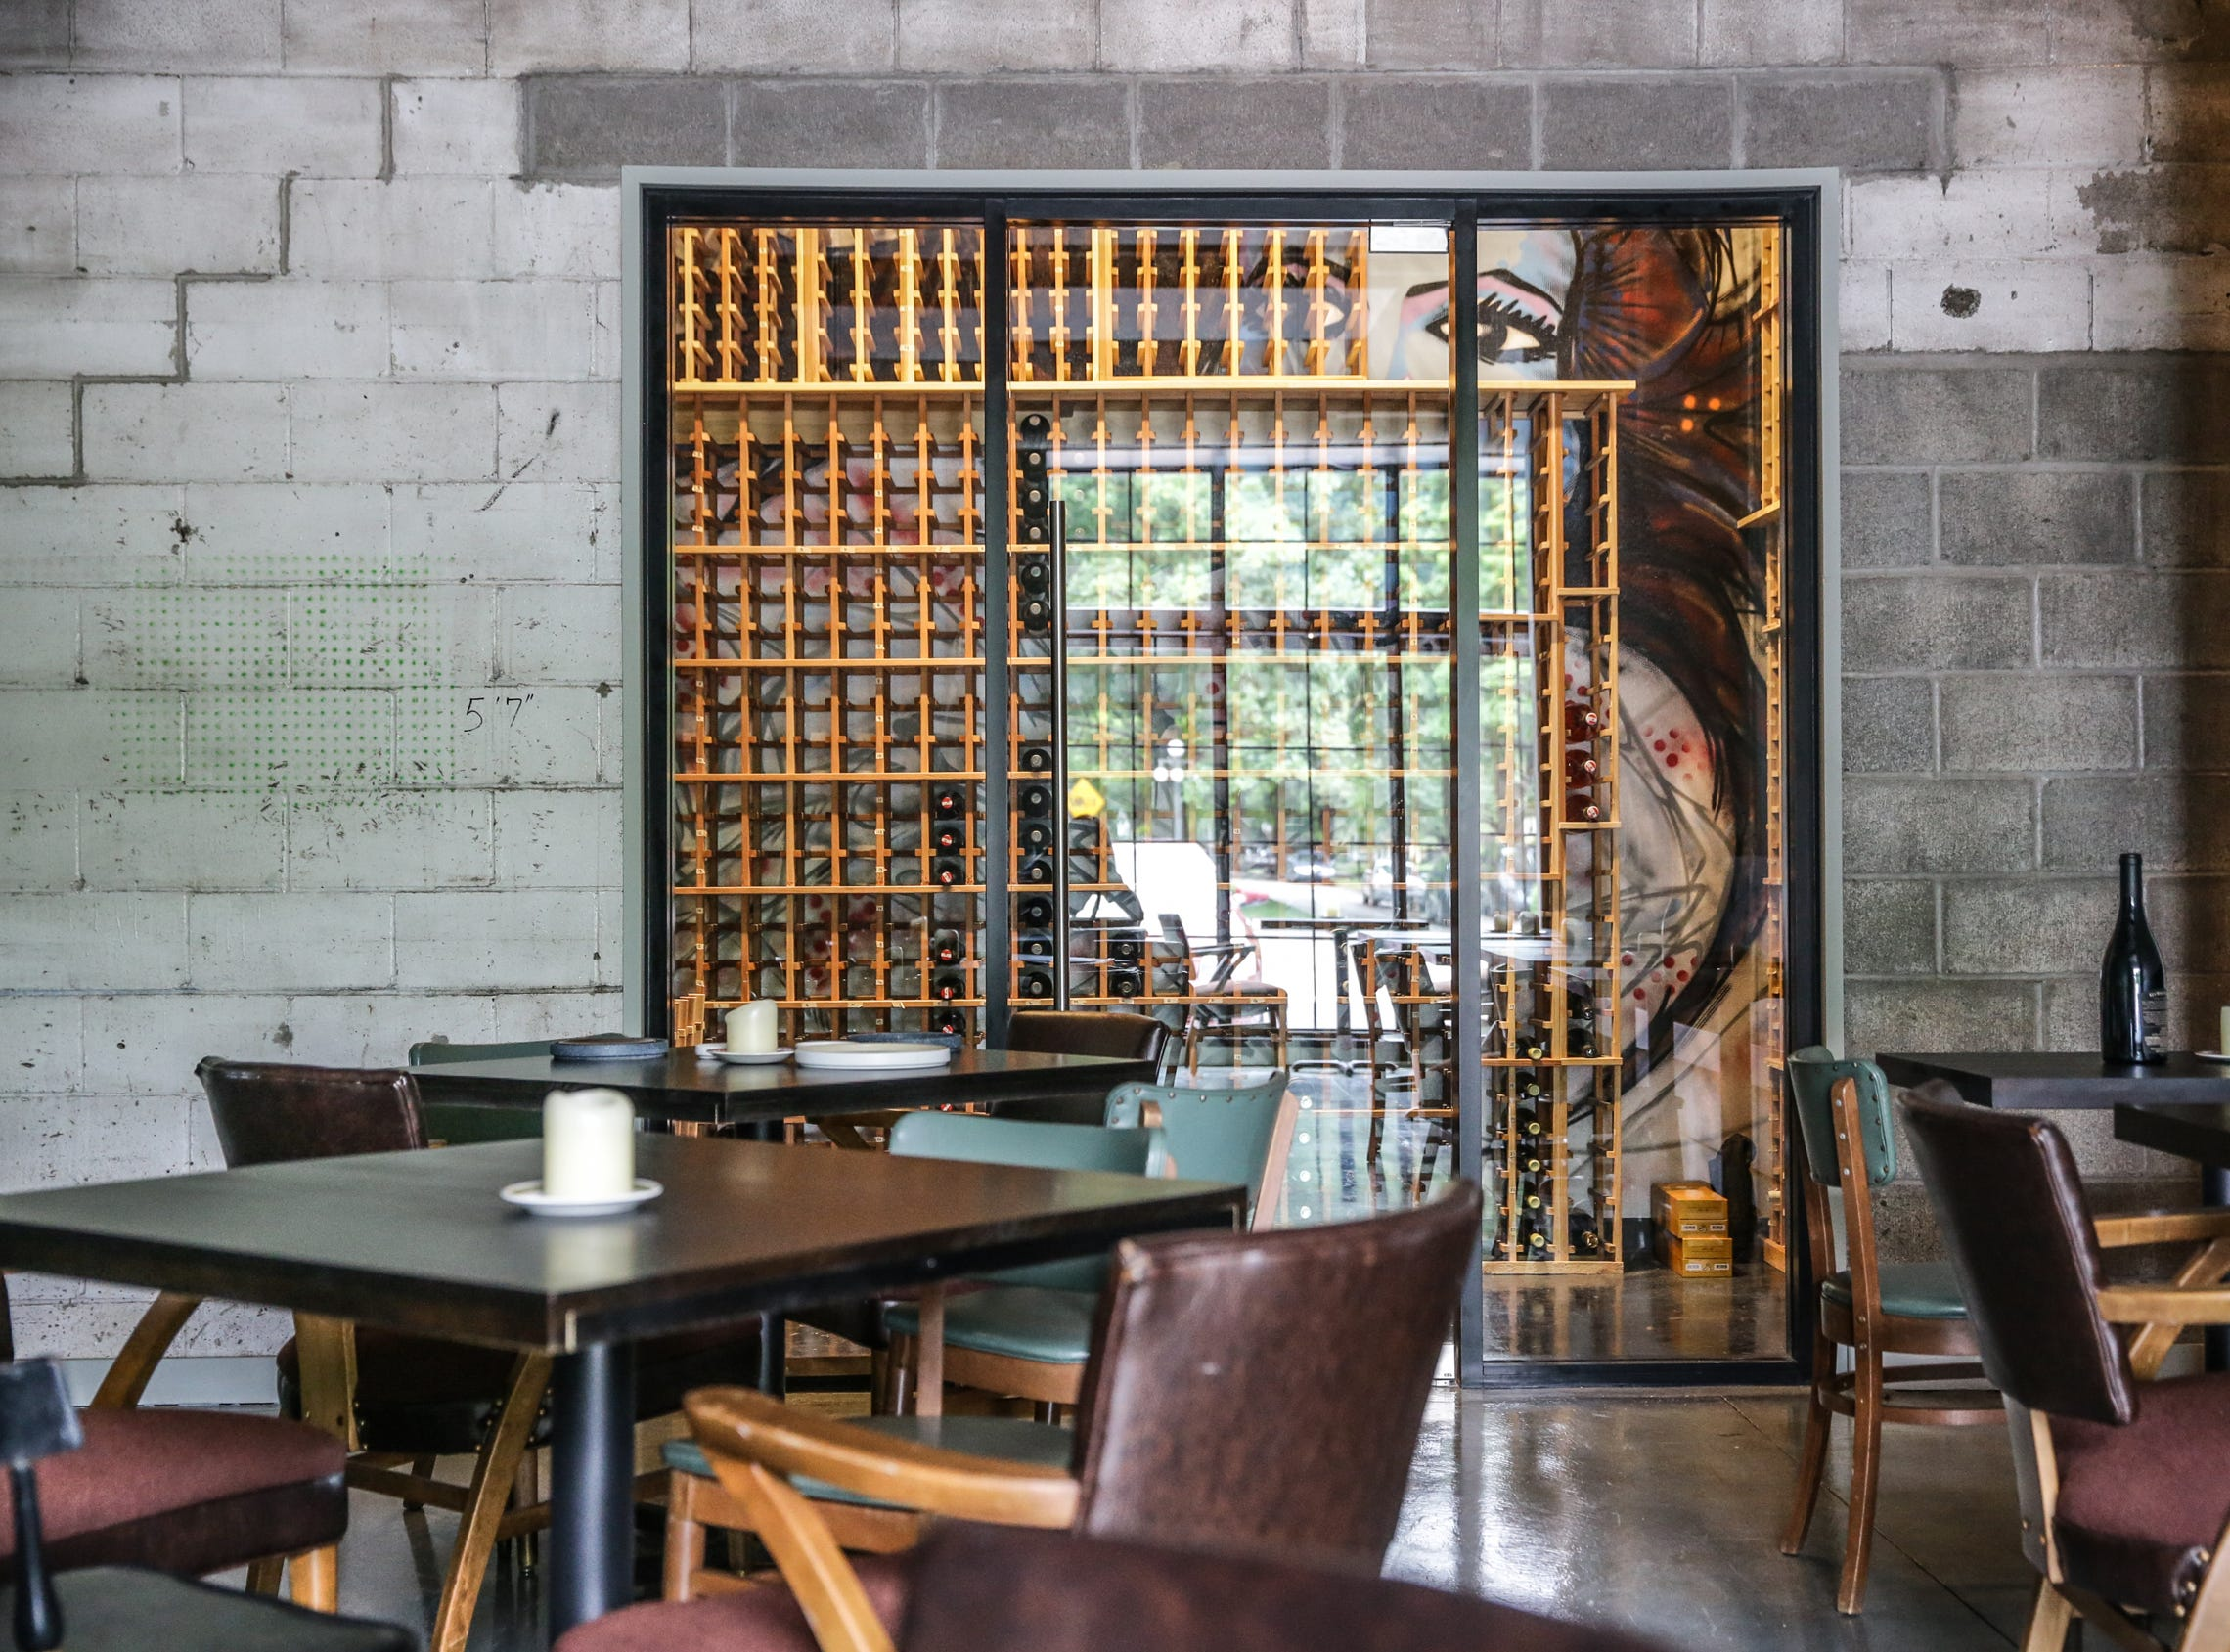 A wine cellar features graffiti art at Beholder, a new restaurant by Milktooth owner and Chef Jonathan Brooks, Tuesday, June 12, 2018. Beholder is located at 1844 E. 10th St. in Indianapolis.